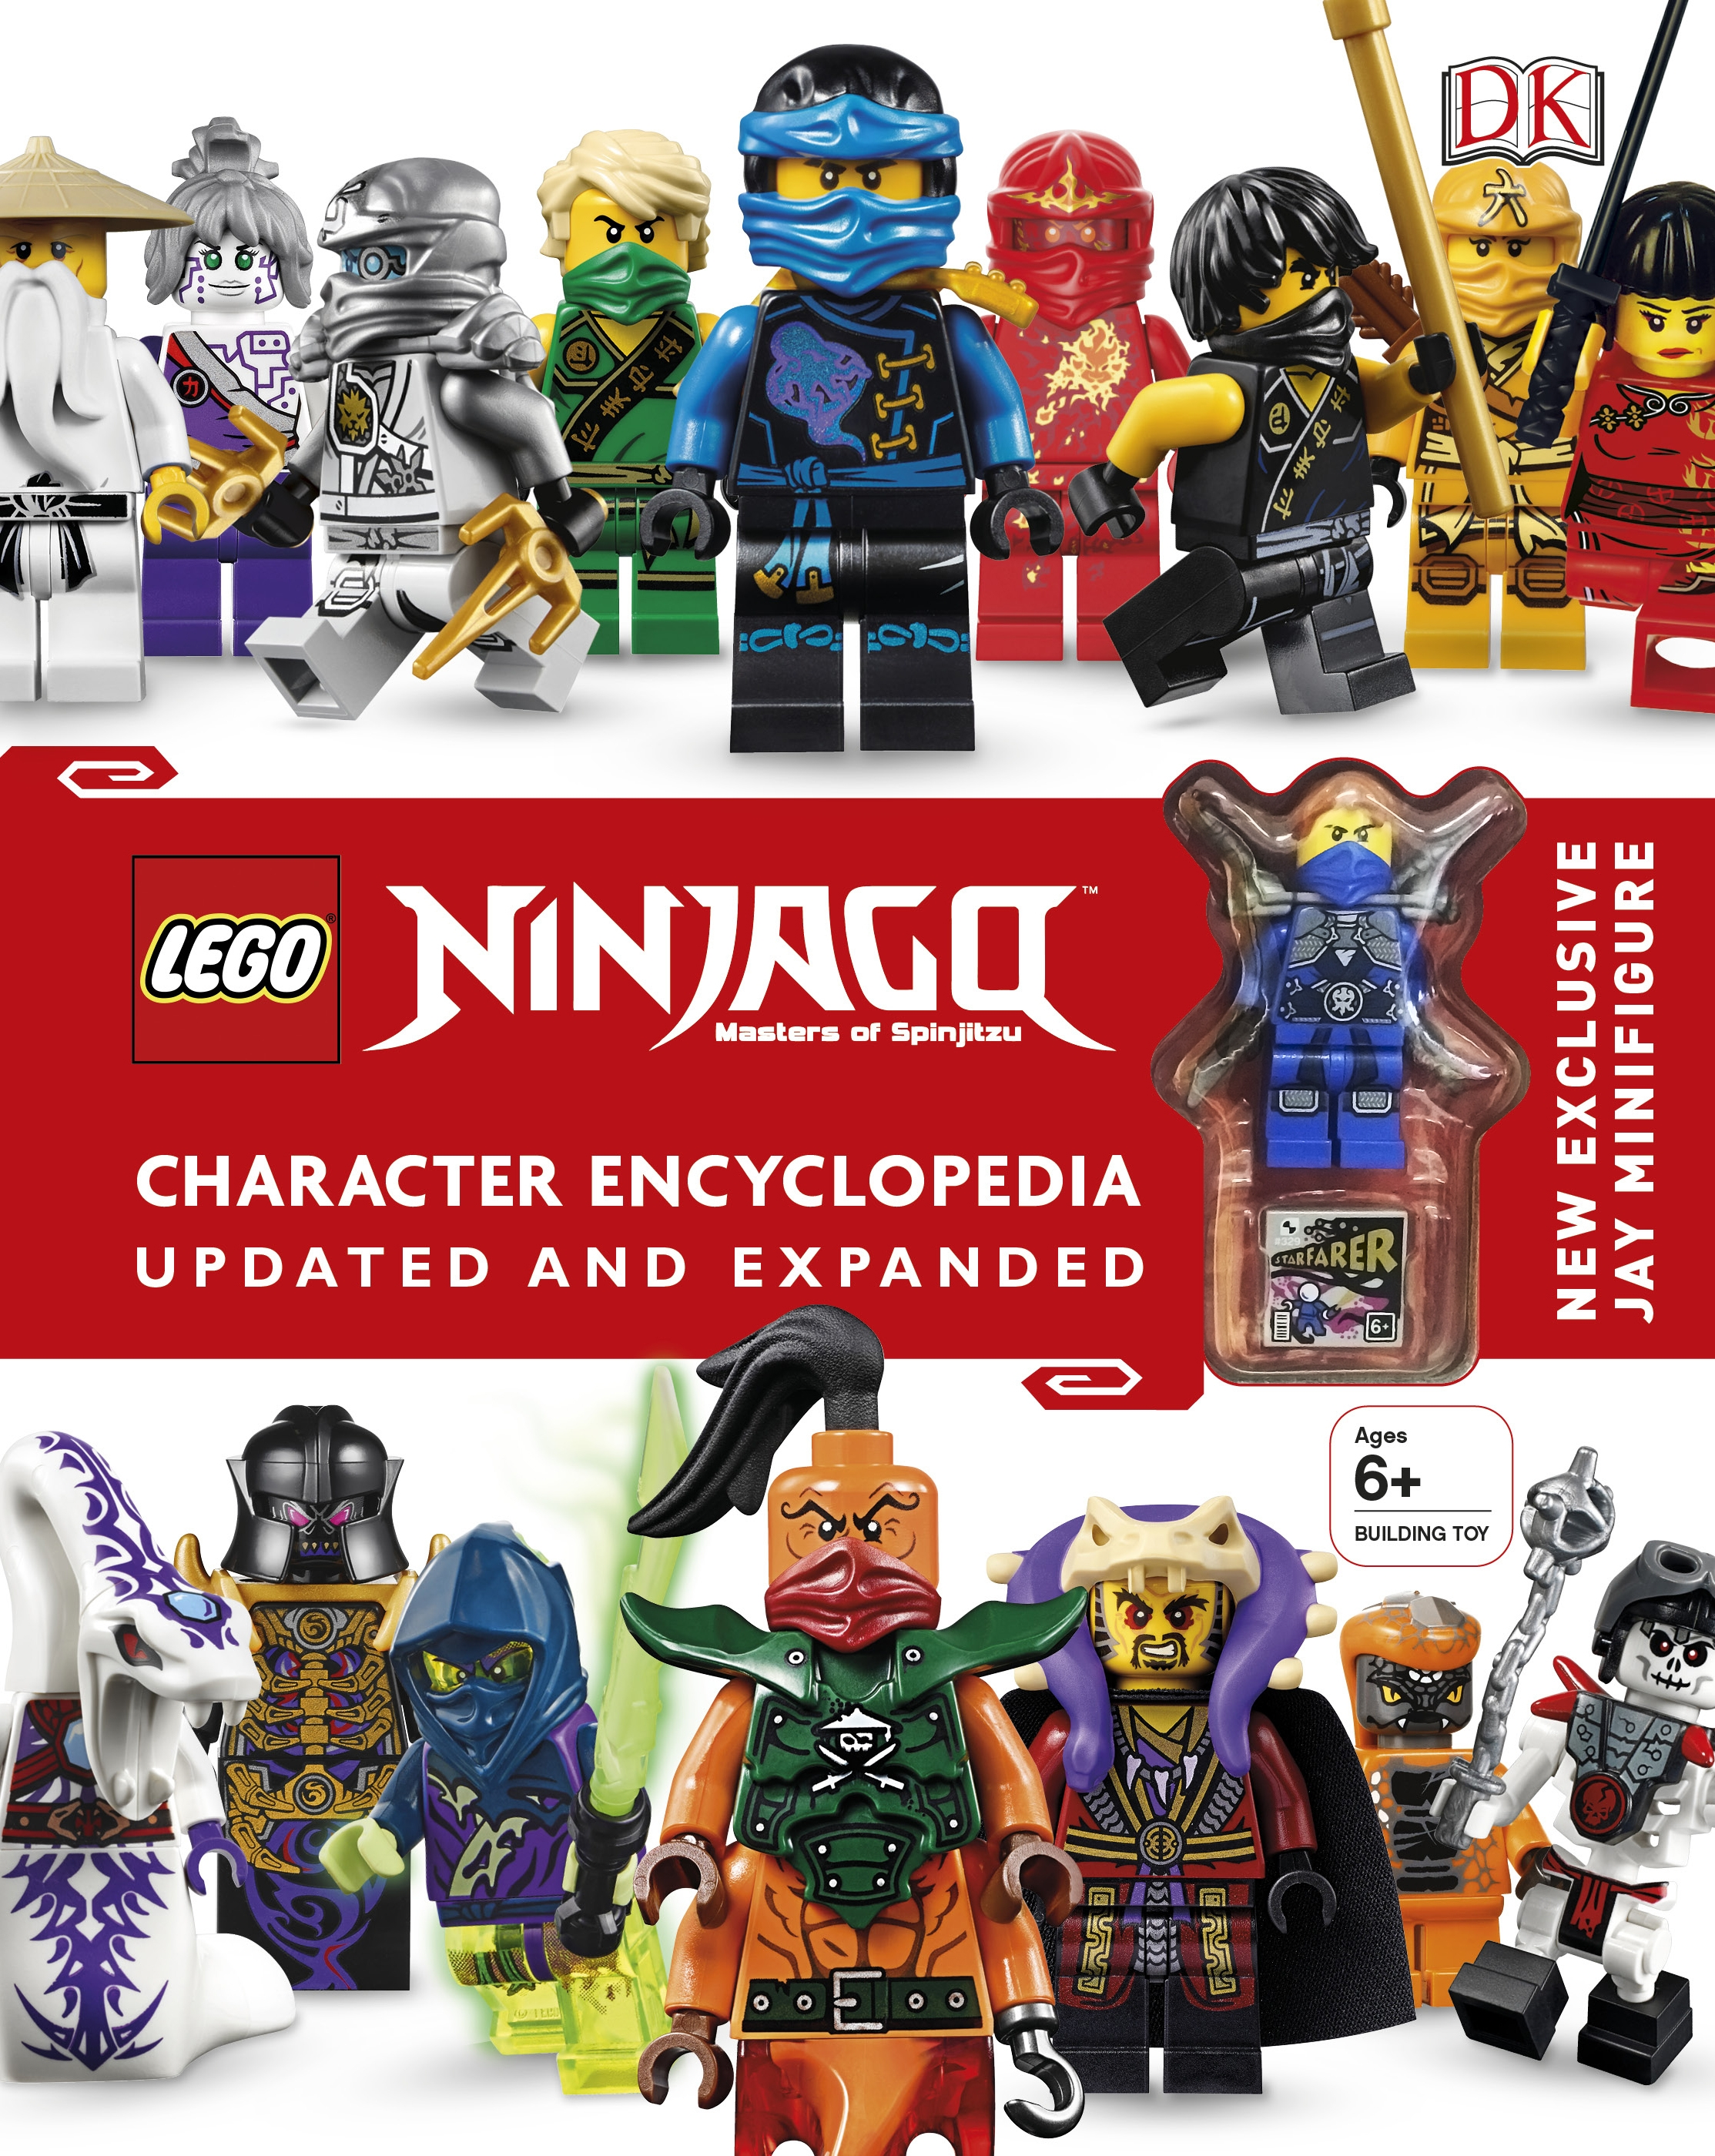 LEGO Ninjago Character Encyclopedia by Dorling Kindersley, ISBN: 9780241232484